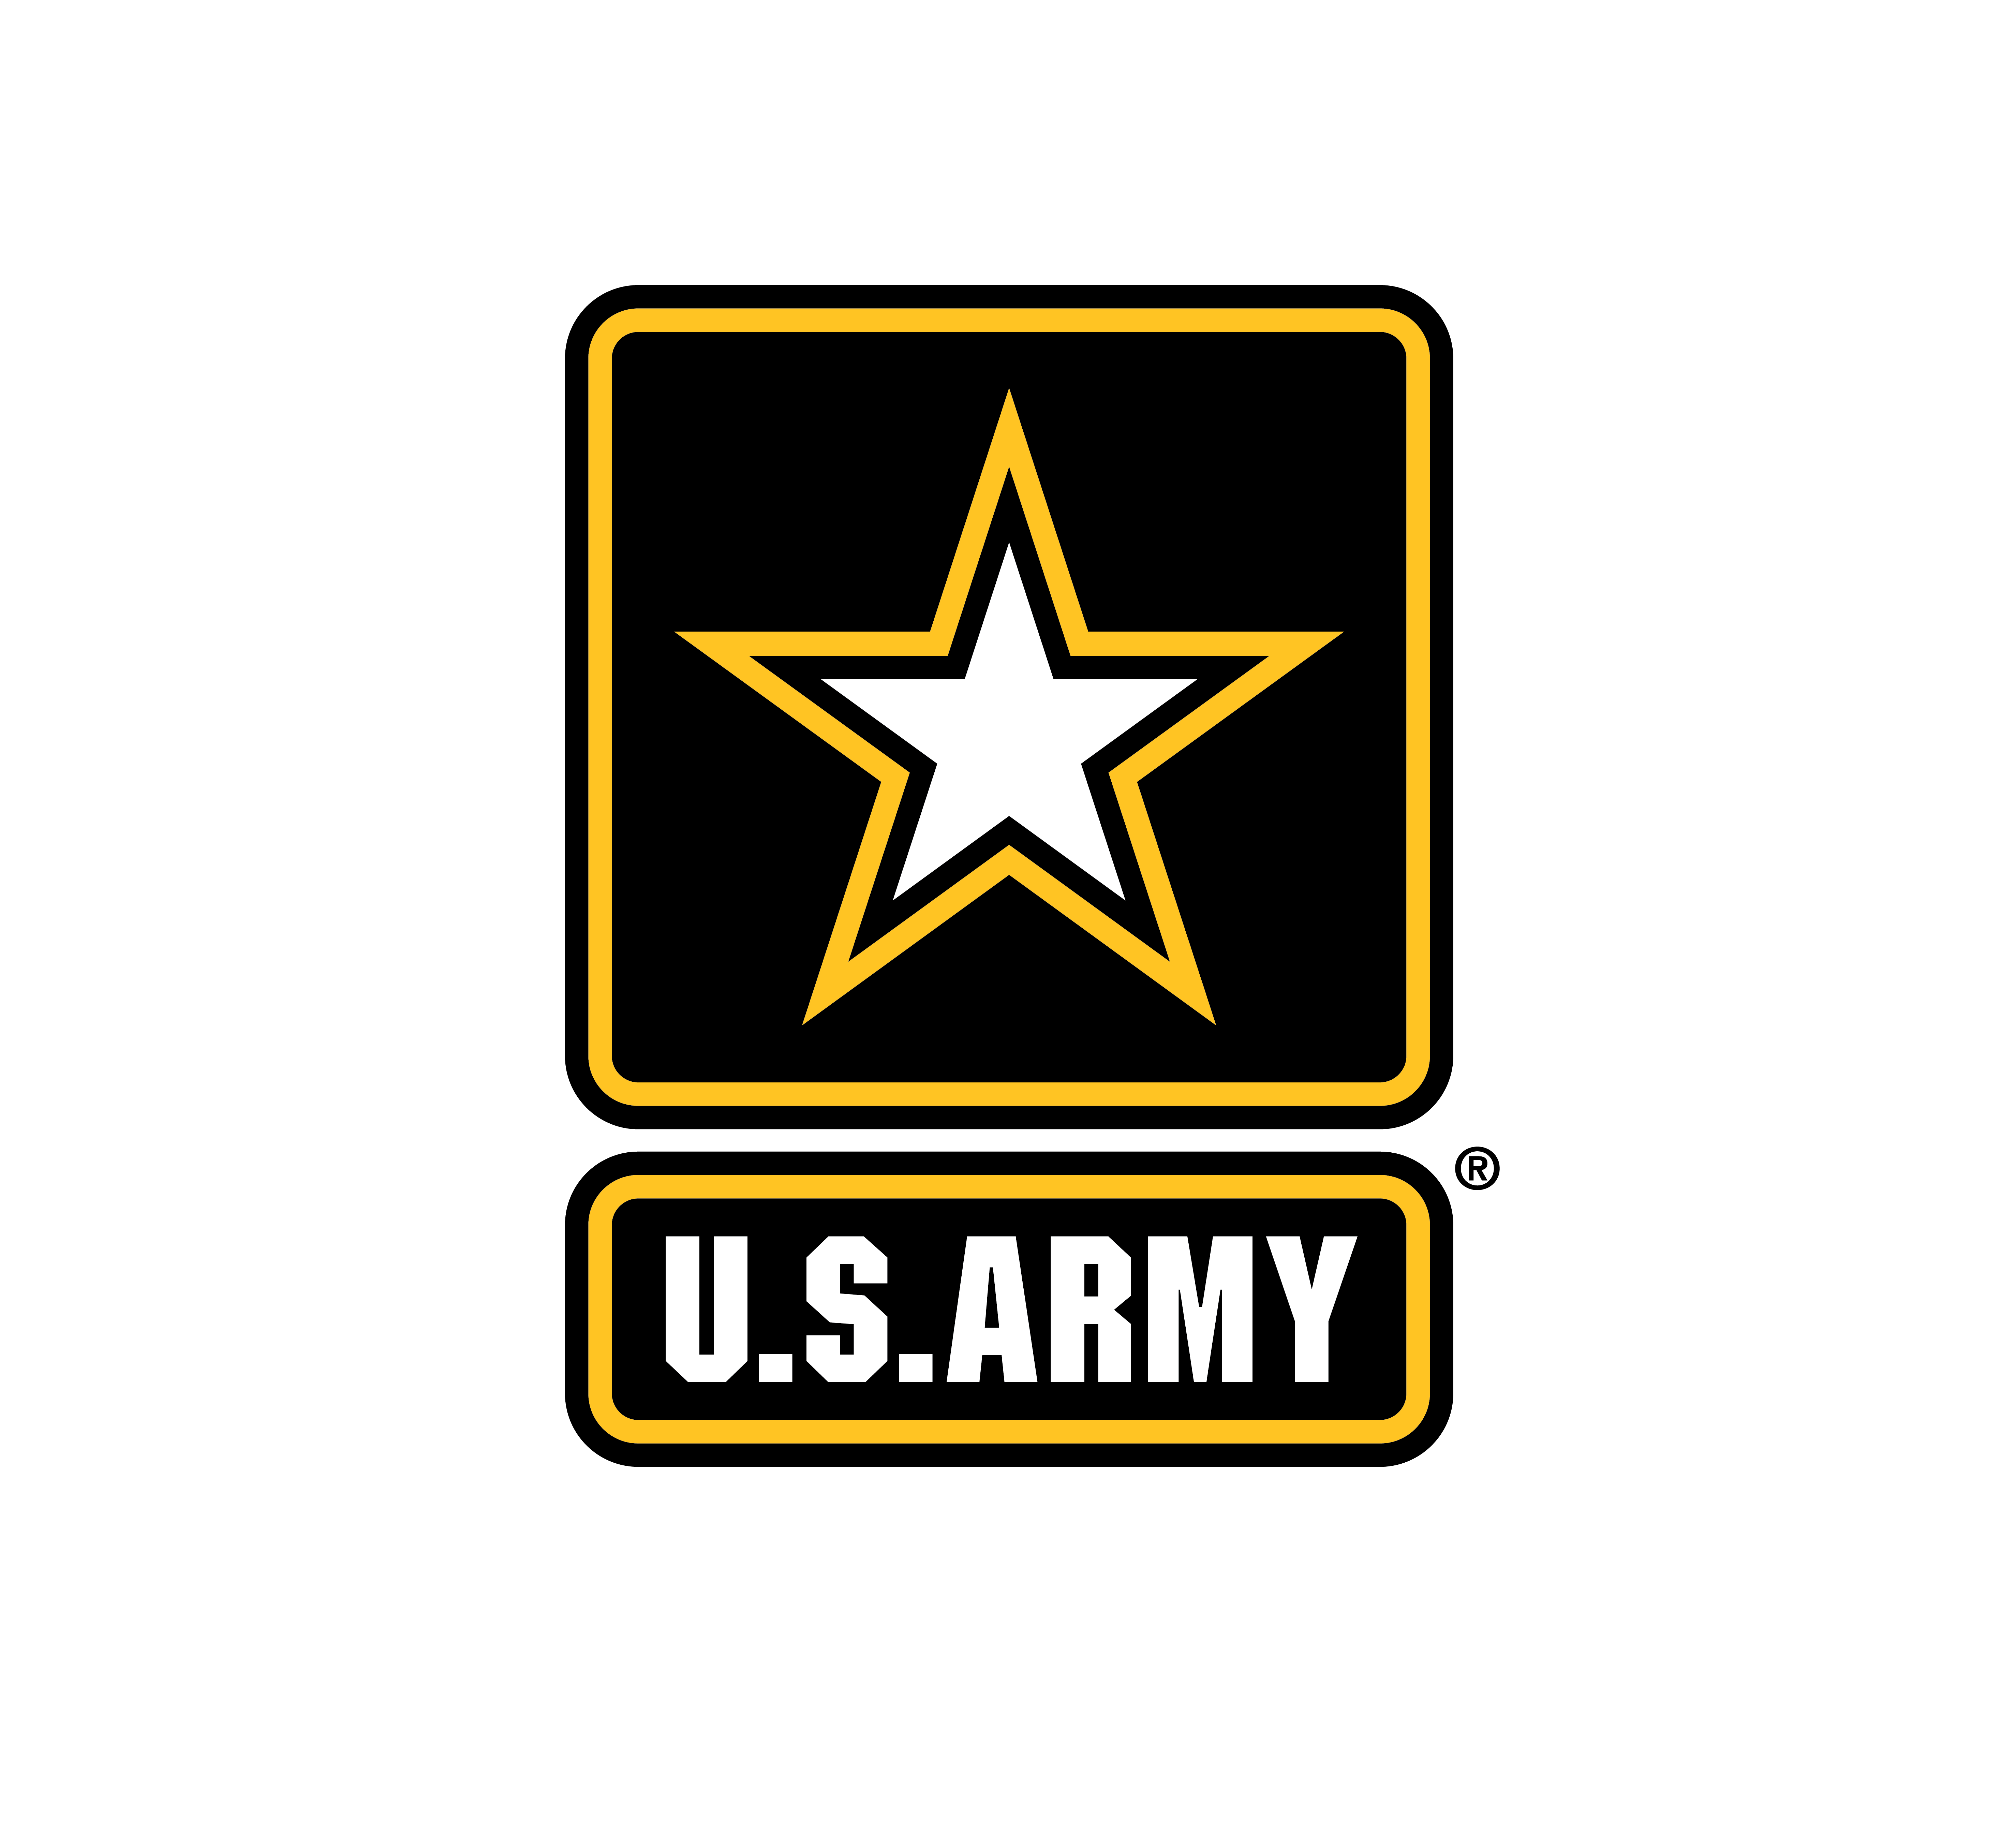 USARMY_2D_2C_LE_NS_PS